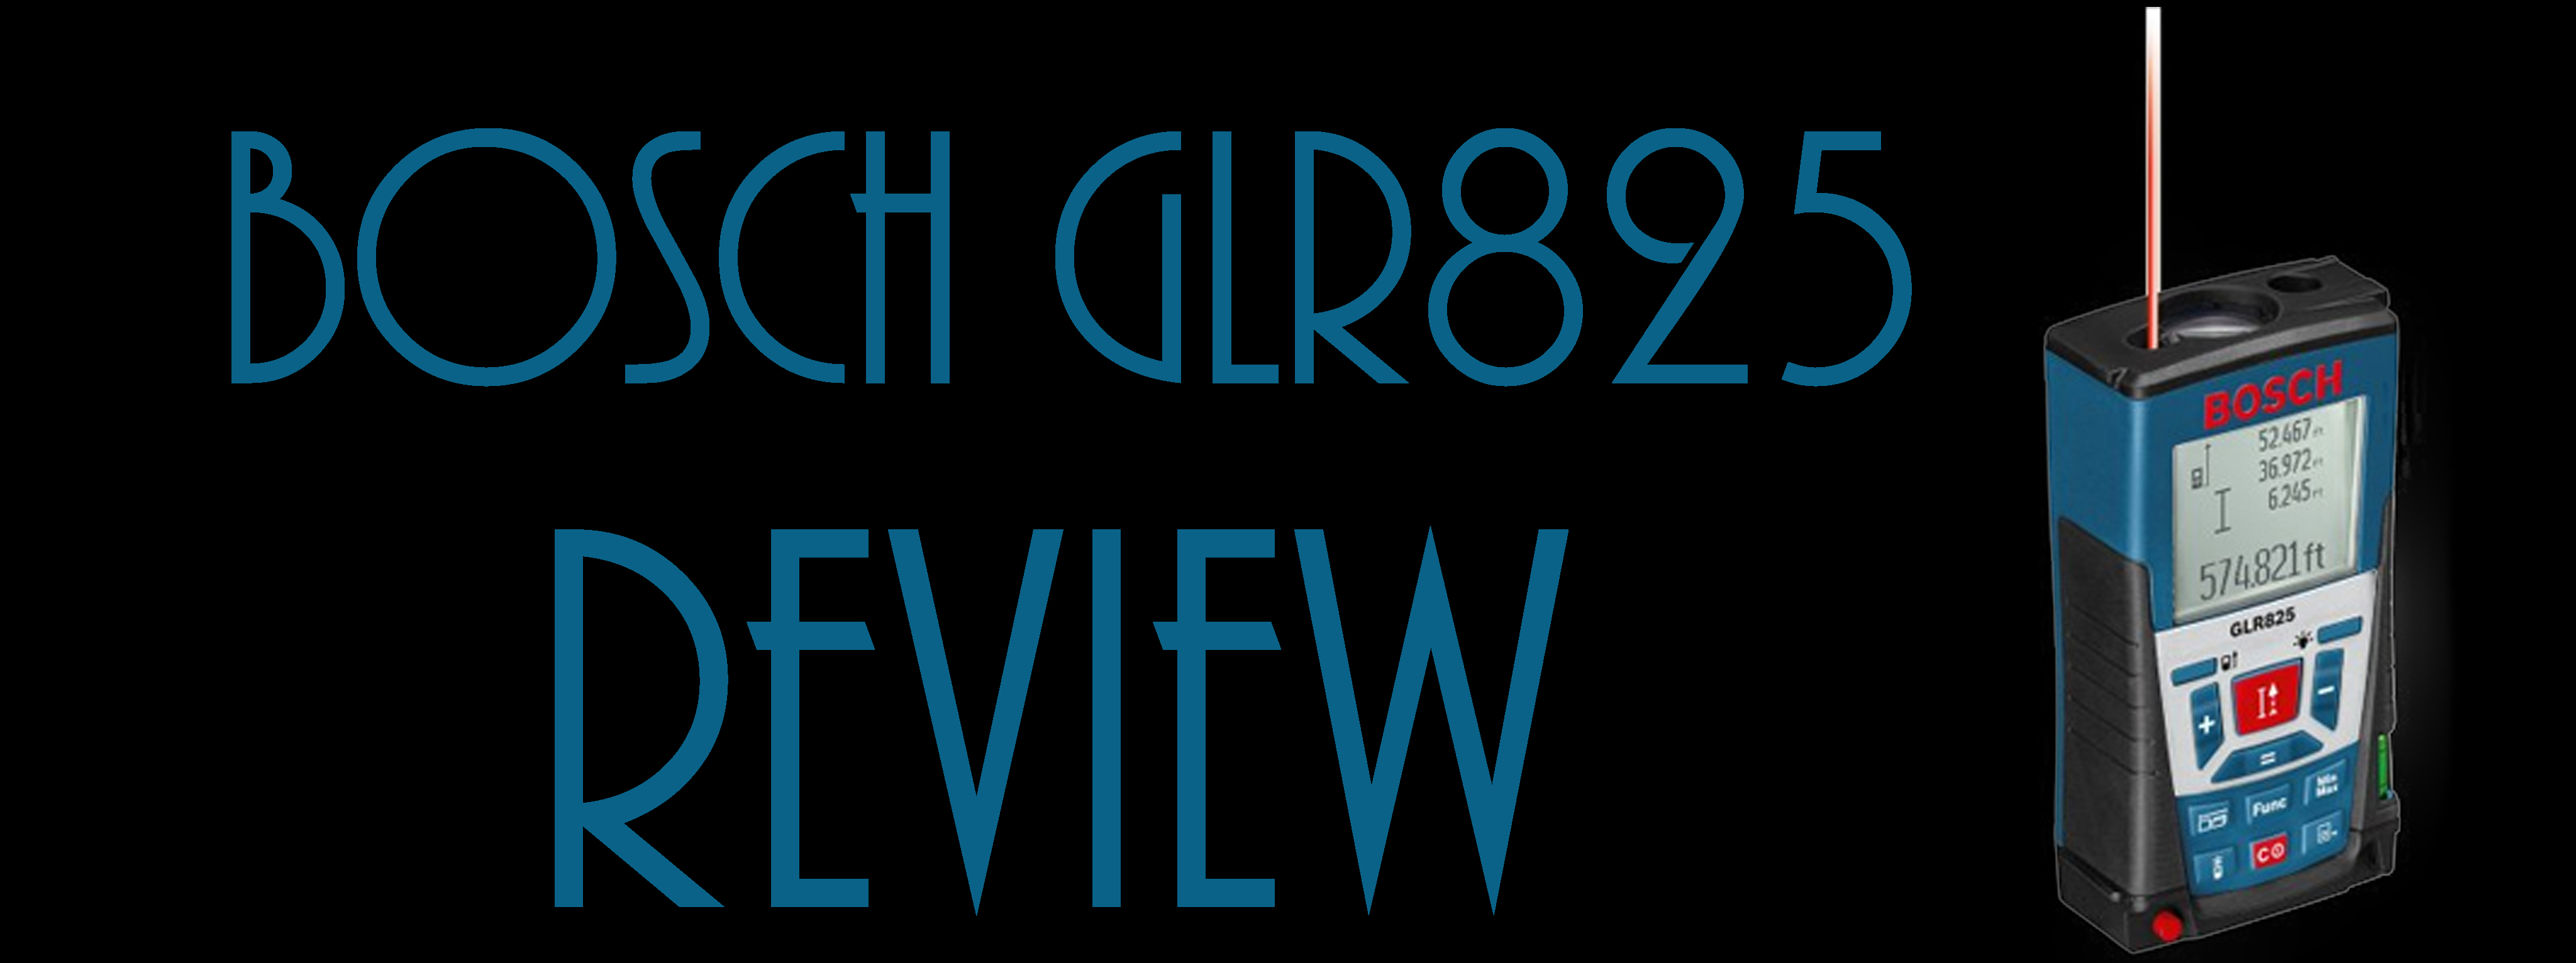 Feature Image for Bosch GLR825 Review